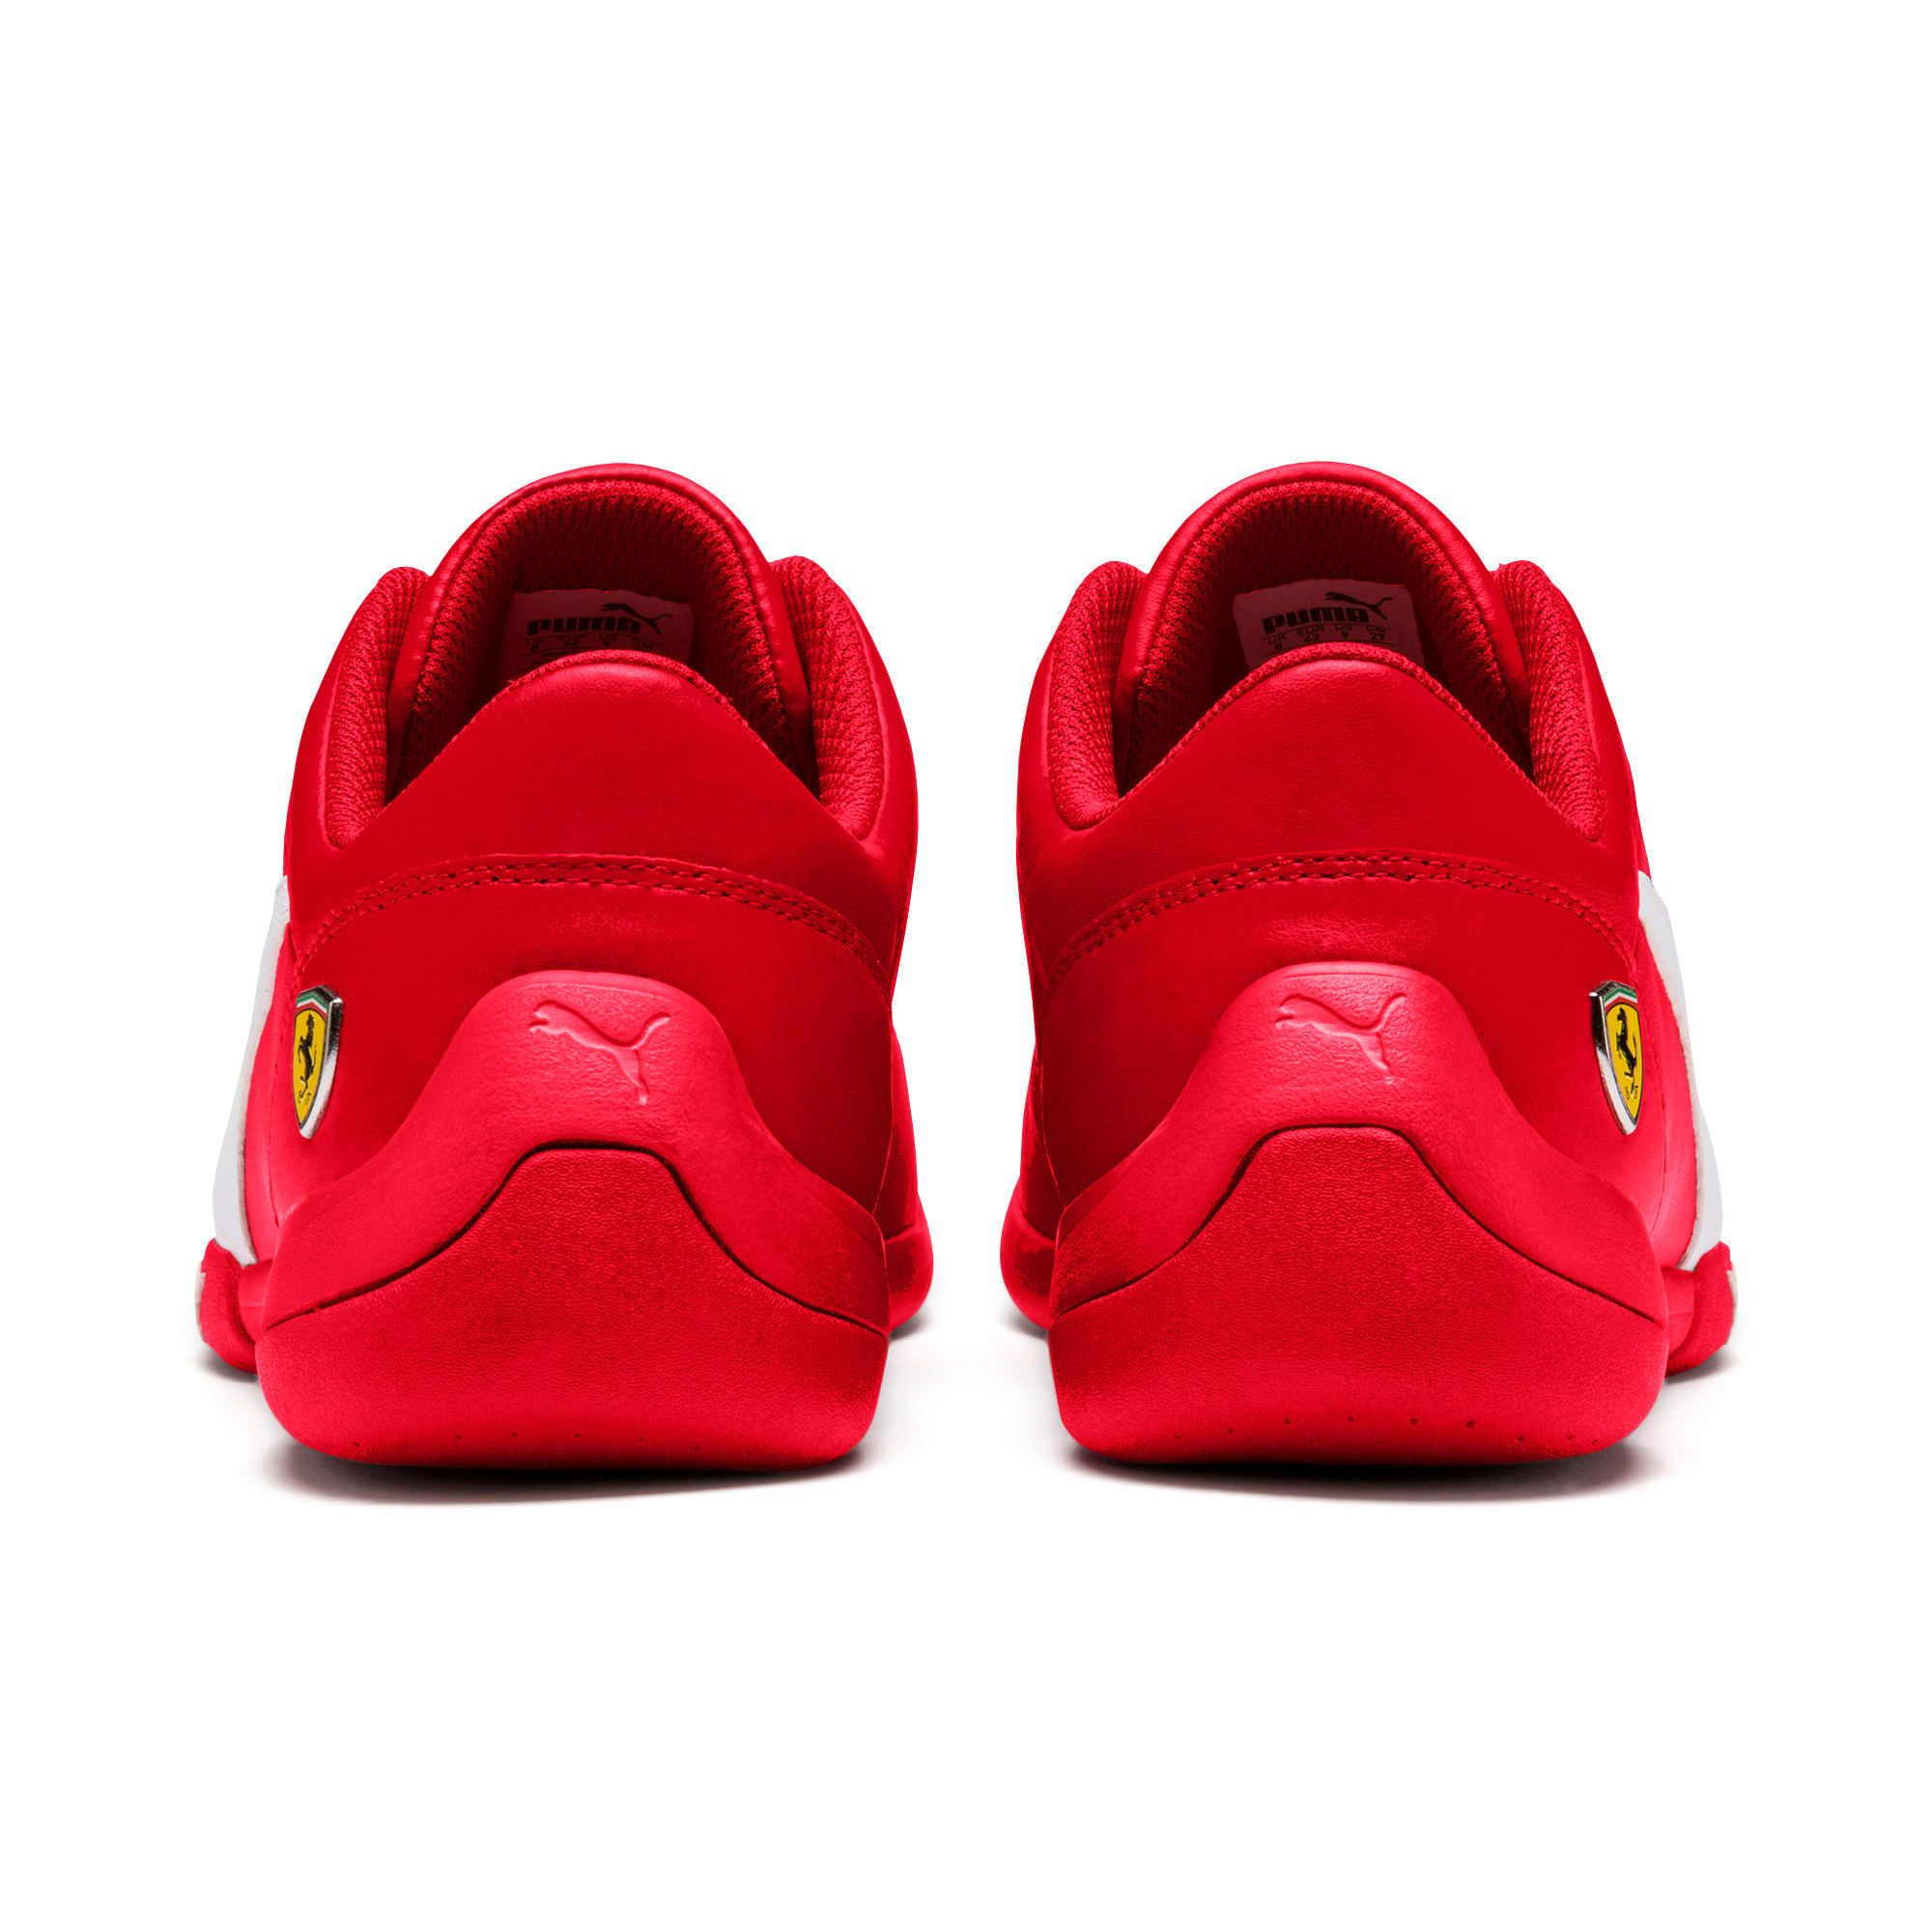 Ferrari Kart Cat III Trainers | PUMA Sale | PUMA United Kingdom